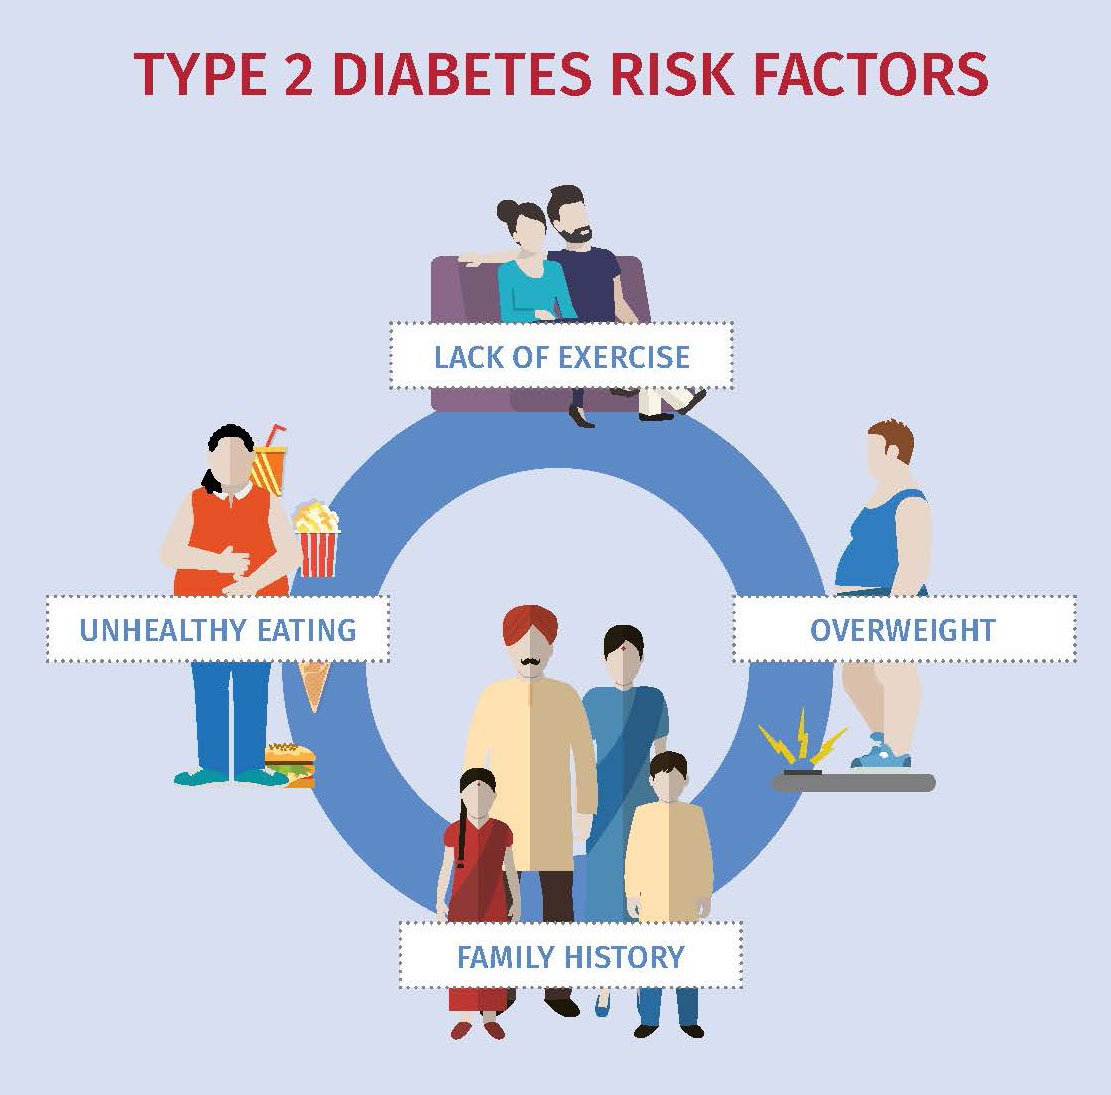 test Twitter Media - 1 in 2 currently living with #diabetes are unaware of their disease. Most have #type2diabetes. Learn about your risk through our simple online test.  https://t.co/SX1daABdzK https://t.co/Hqo9qkuUJC